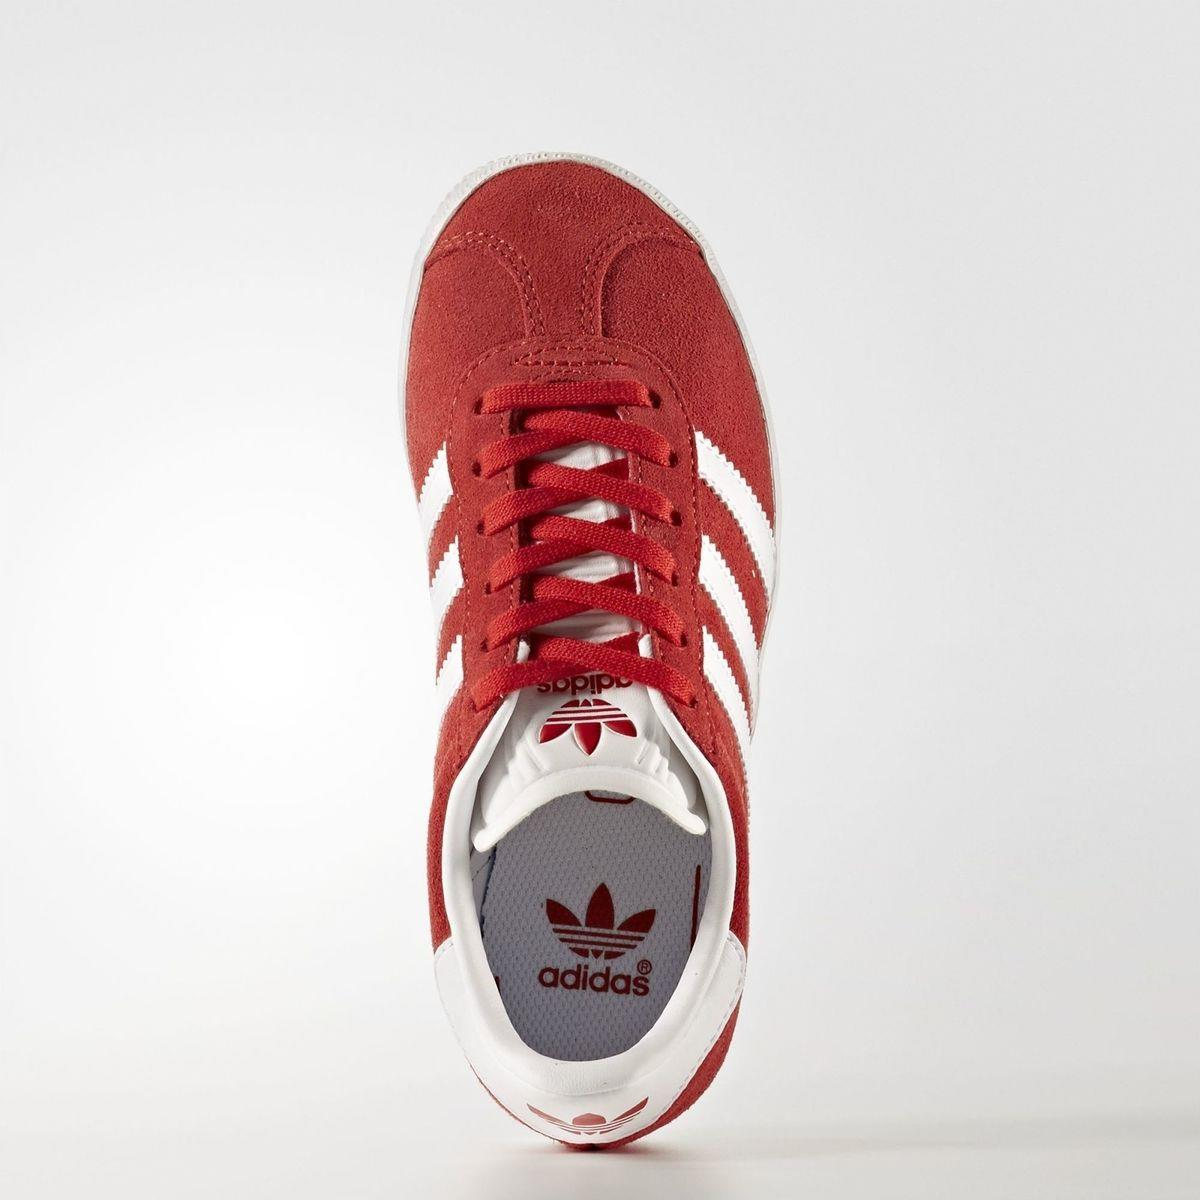 reputable site b0355 ab49b Adidas Gazelle C Bambino Sneakers Red Art. BY9547